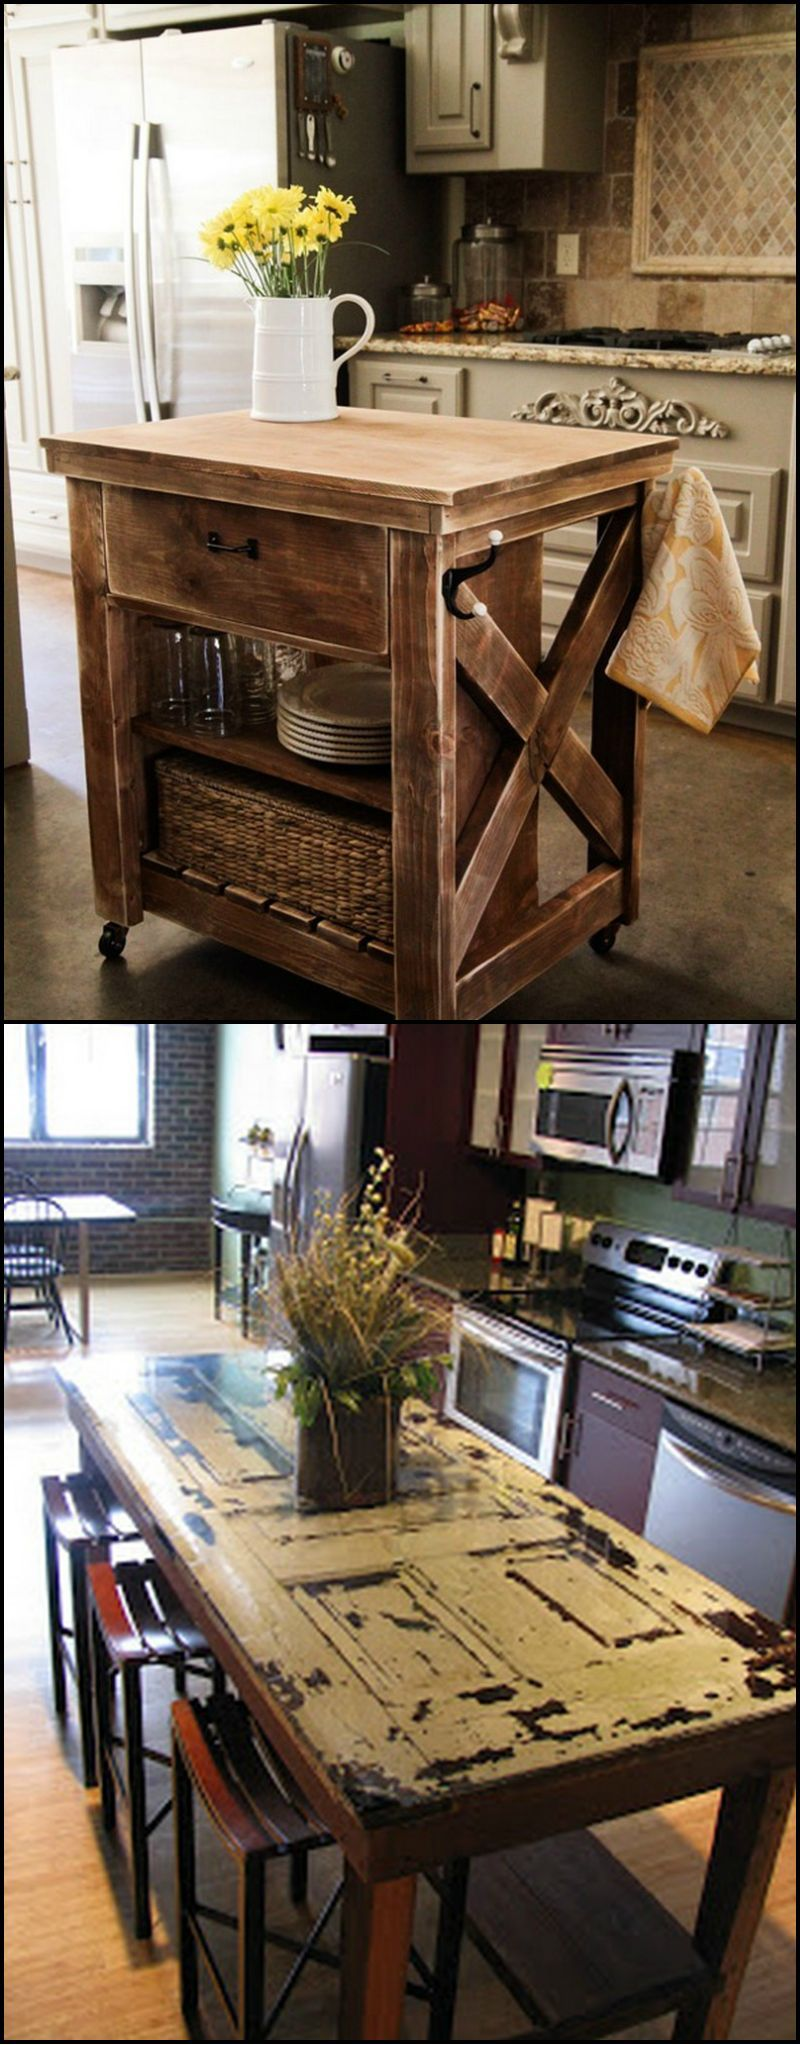 adding or getting a new kitchen island can be expensive